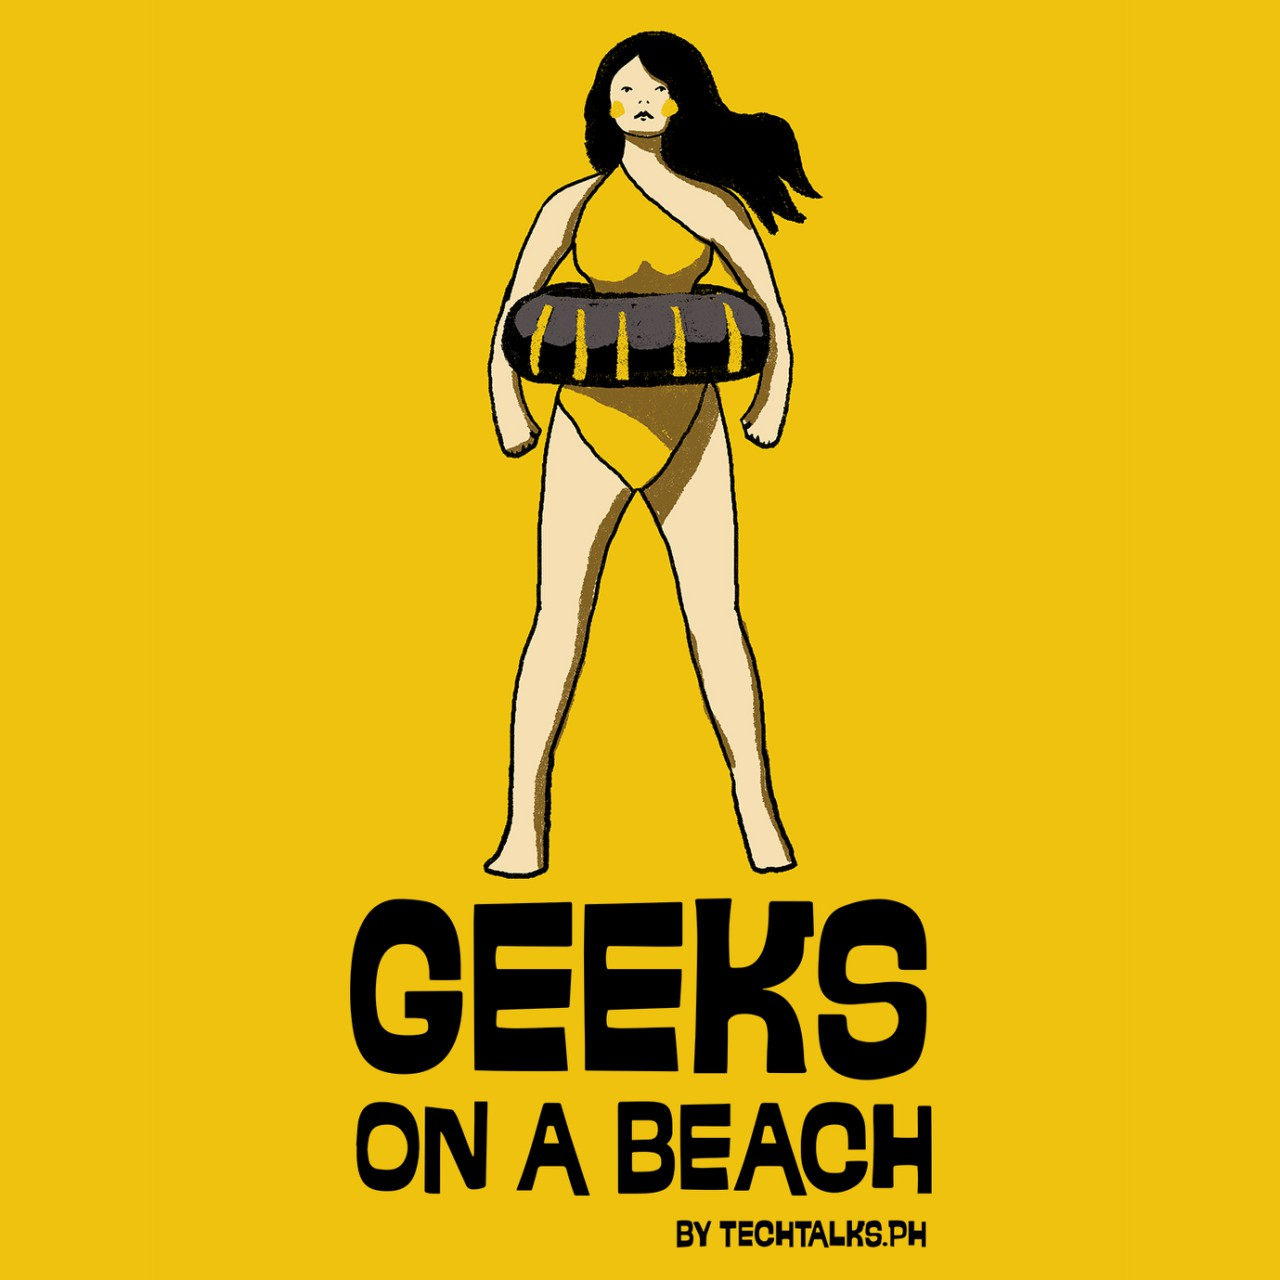 Name the Geek Goddess and Get a Chance to WIN GOAB Ticket [Promo Mechanics]